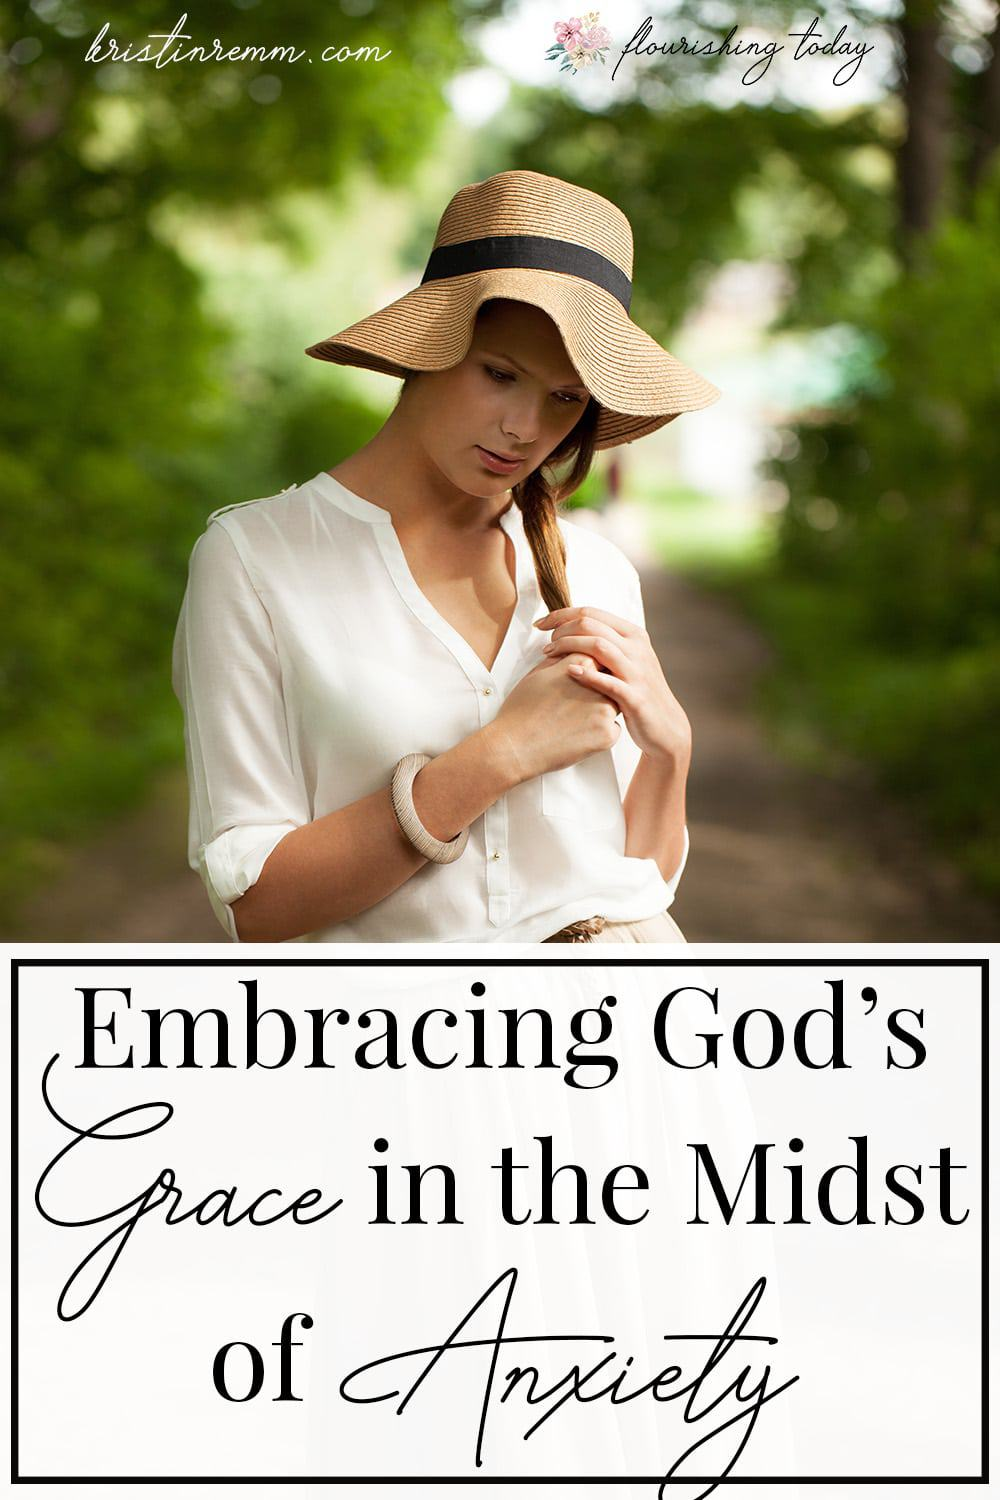 Are you in a hard place right now? Do you feel overwhelmed by despair? Here are a few tips for embracing grace from God when you're in the midst of anxiety. #anxiety #sorrow #grace #mercy #healing embracing grace god